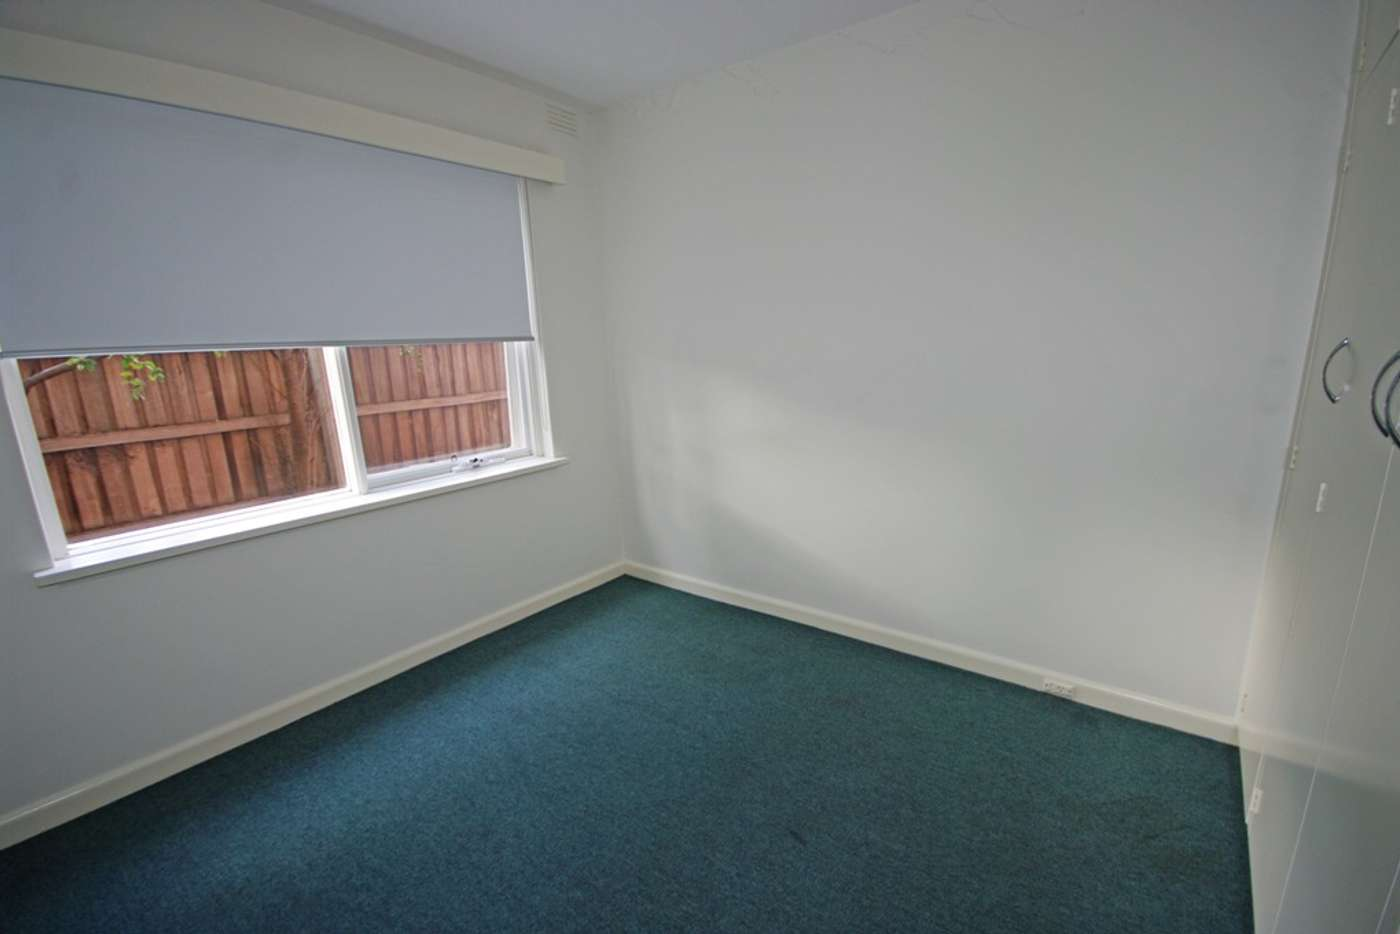 Seventh view of Homely apartment listing, 6/9 Barker Street, Cheltenham VIC 3192